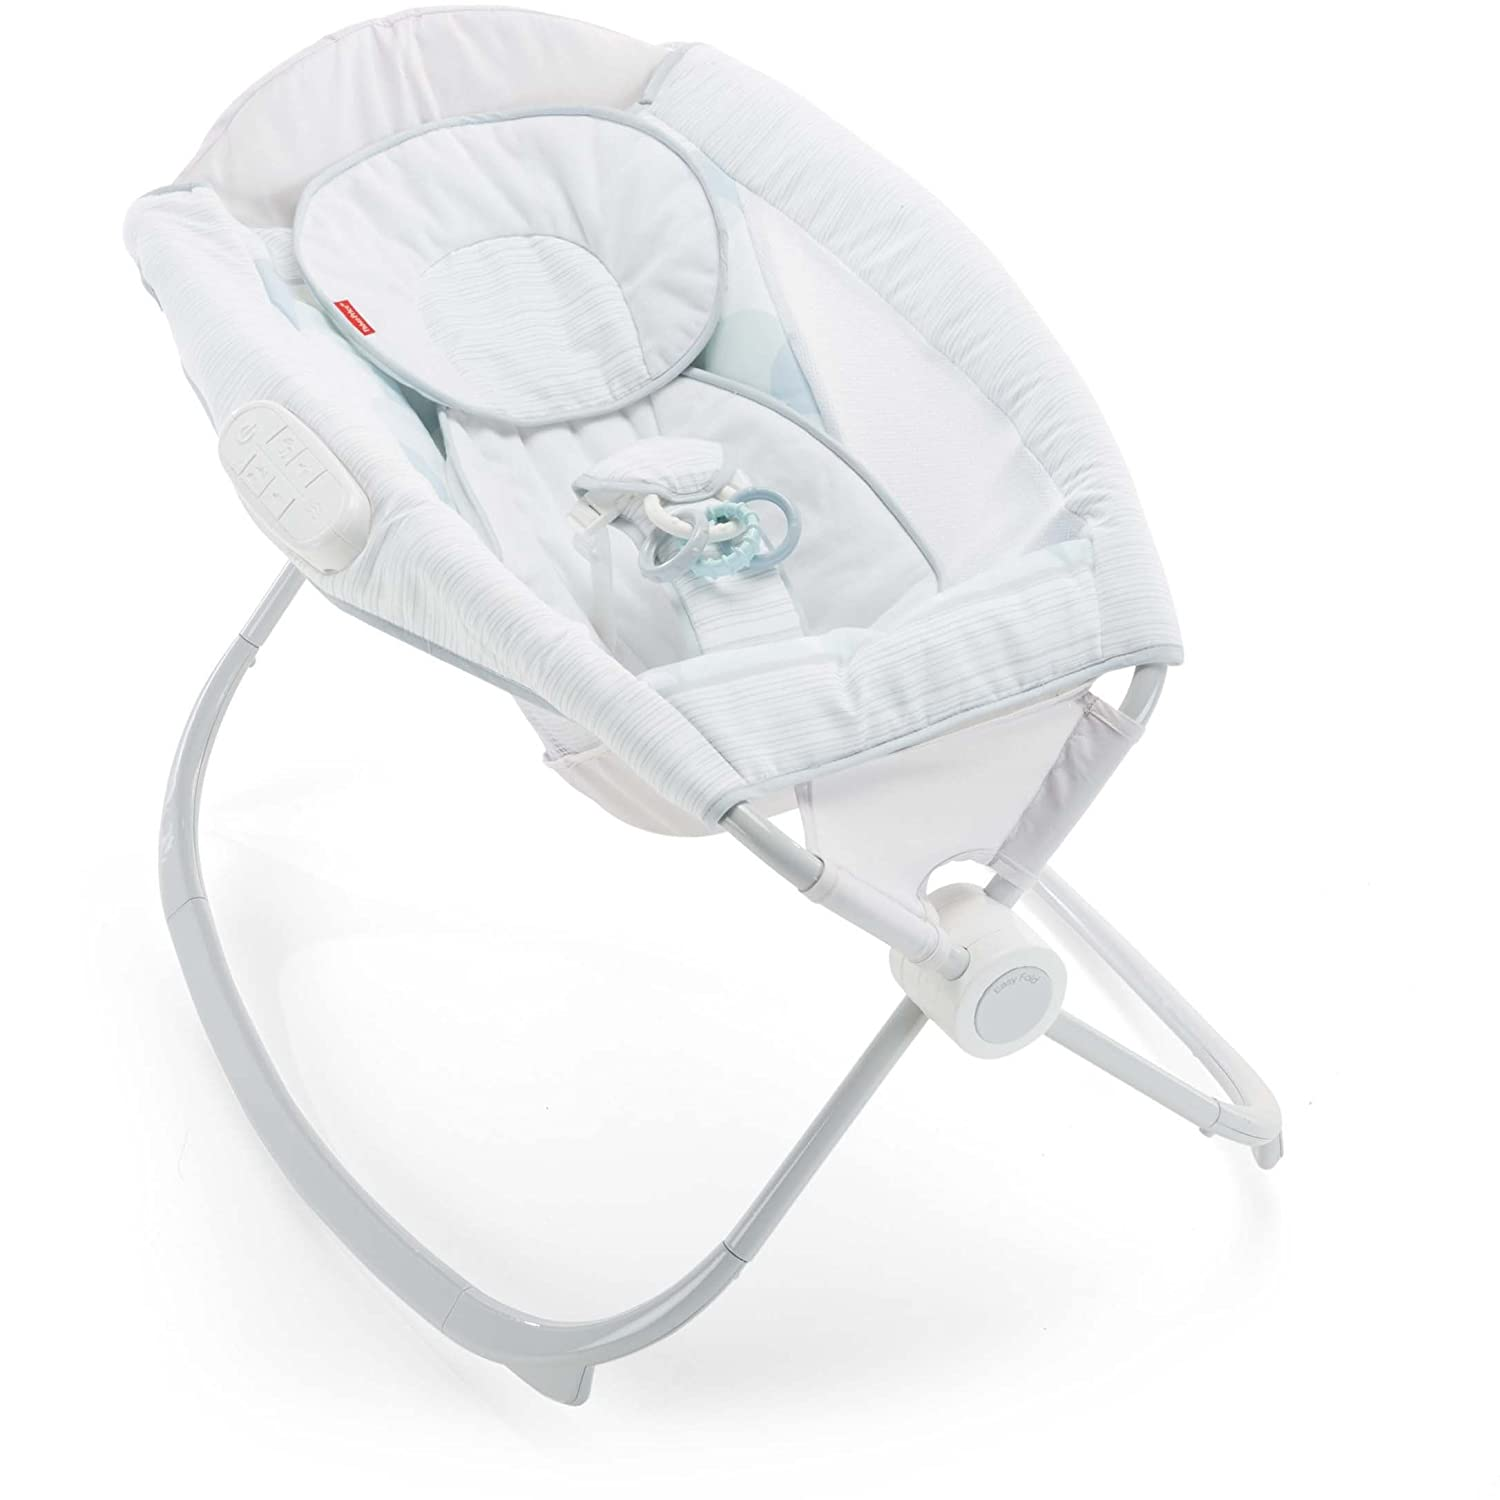 Fisher-Price Deluxe Auto Rock 'n Play Sleeper with SmartConnect Fisher-Price Baby FXF52